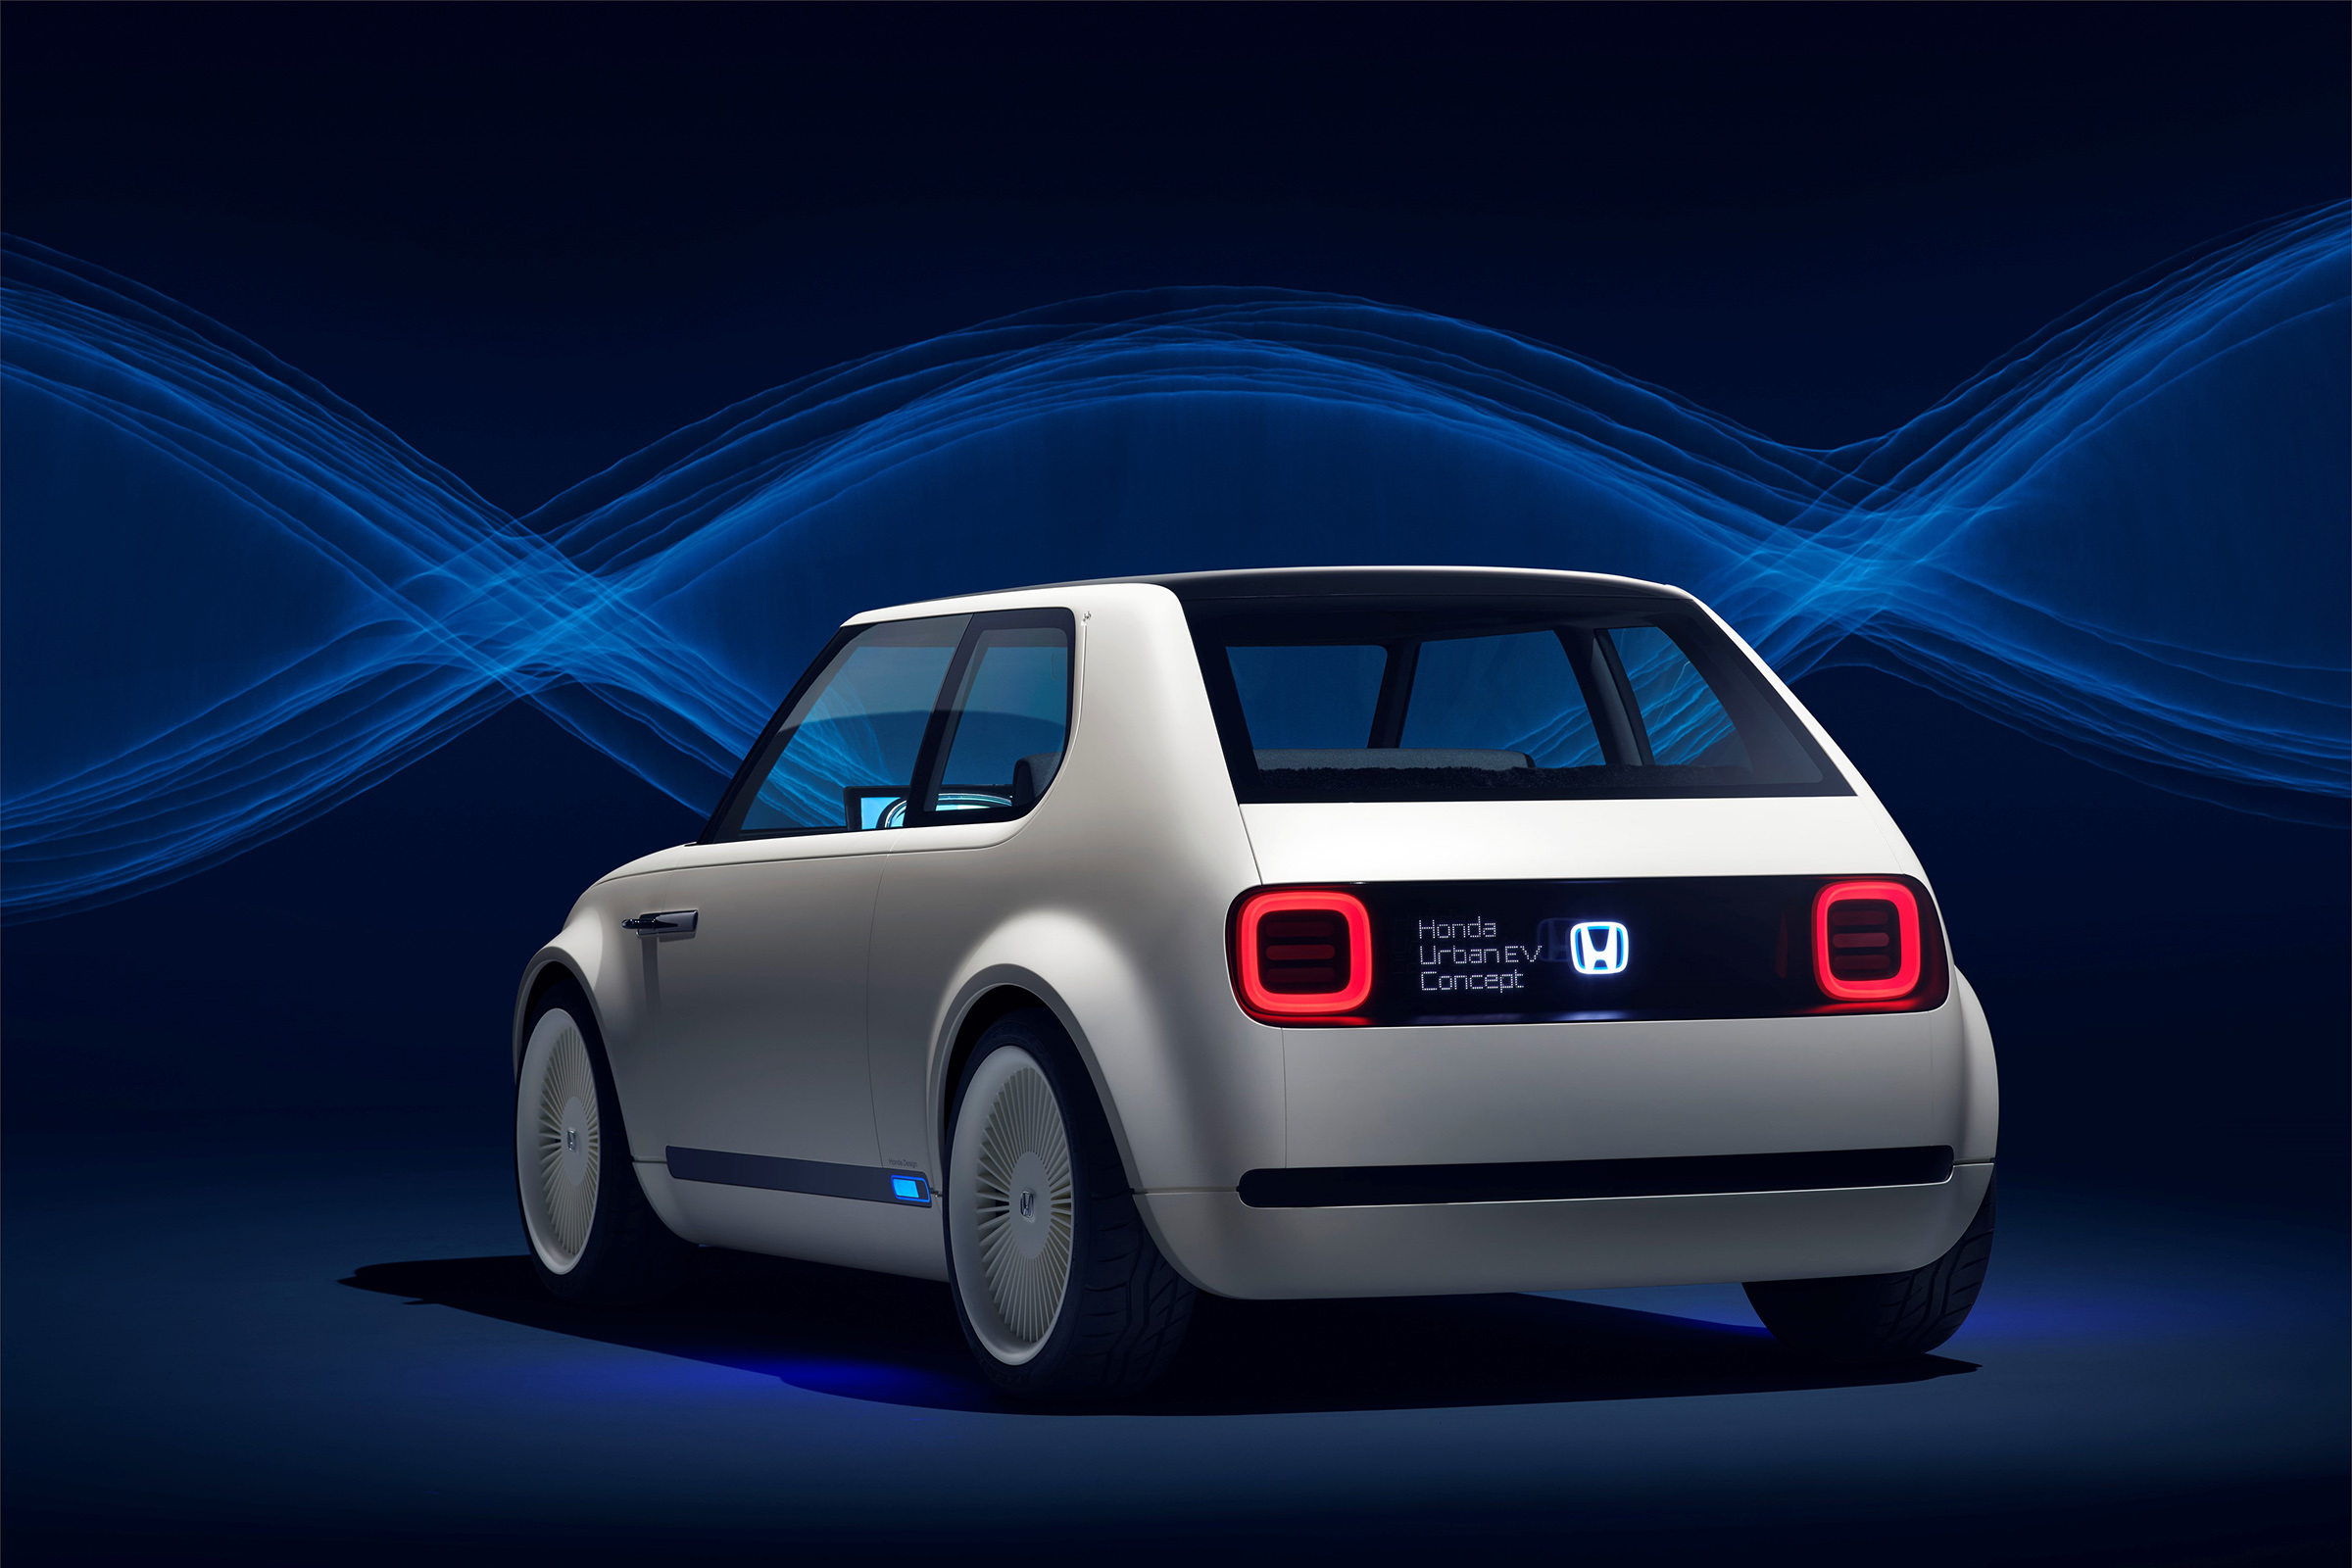 This, Of Course, Is Not The First Time Honda Has Introduced A Retro,  Alternative Fuel Concept. In 2009 Honda Showed An N360 Inspired Electric Car  And A ...